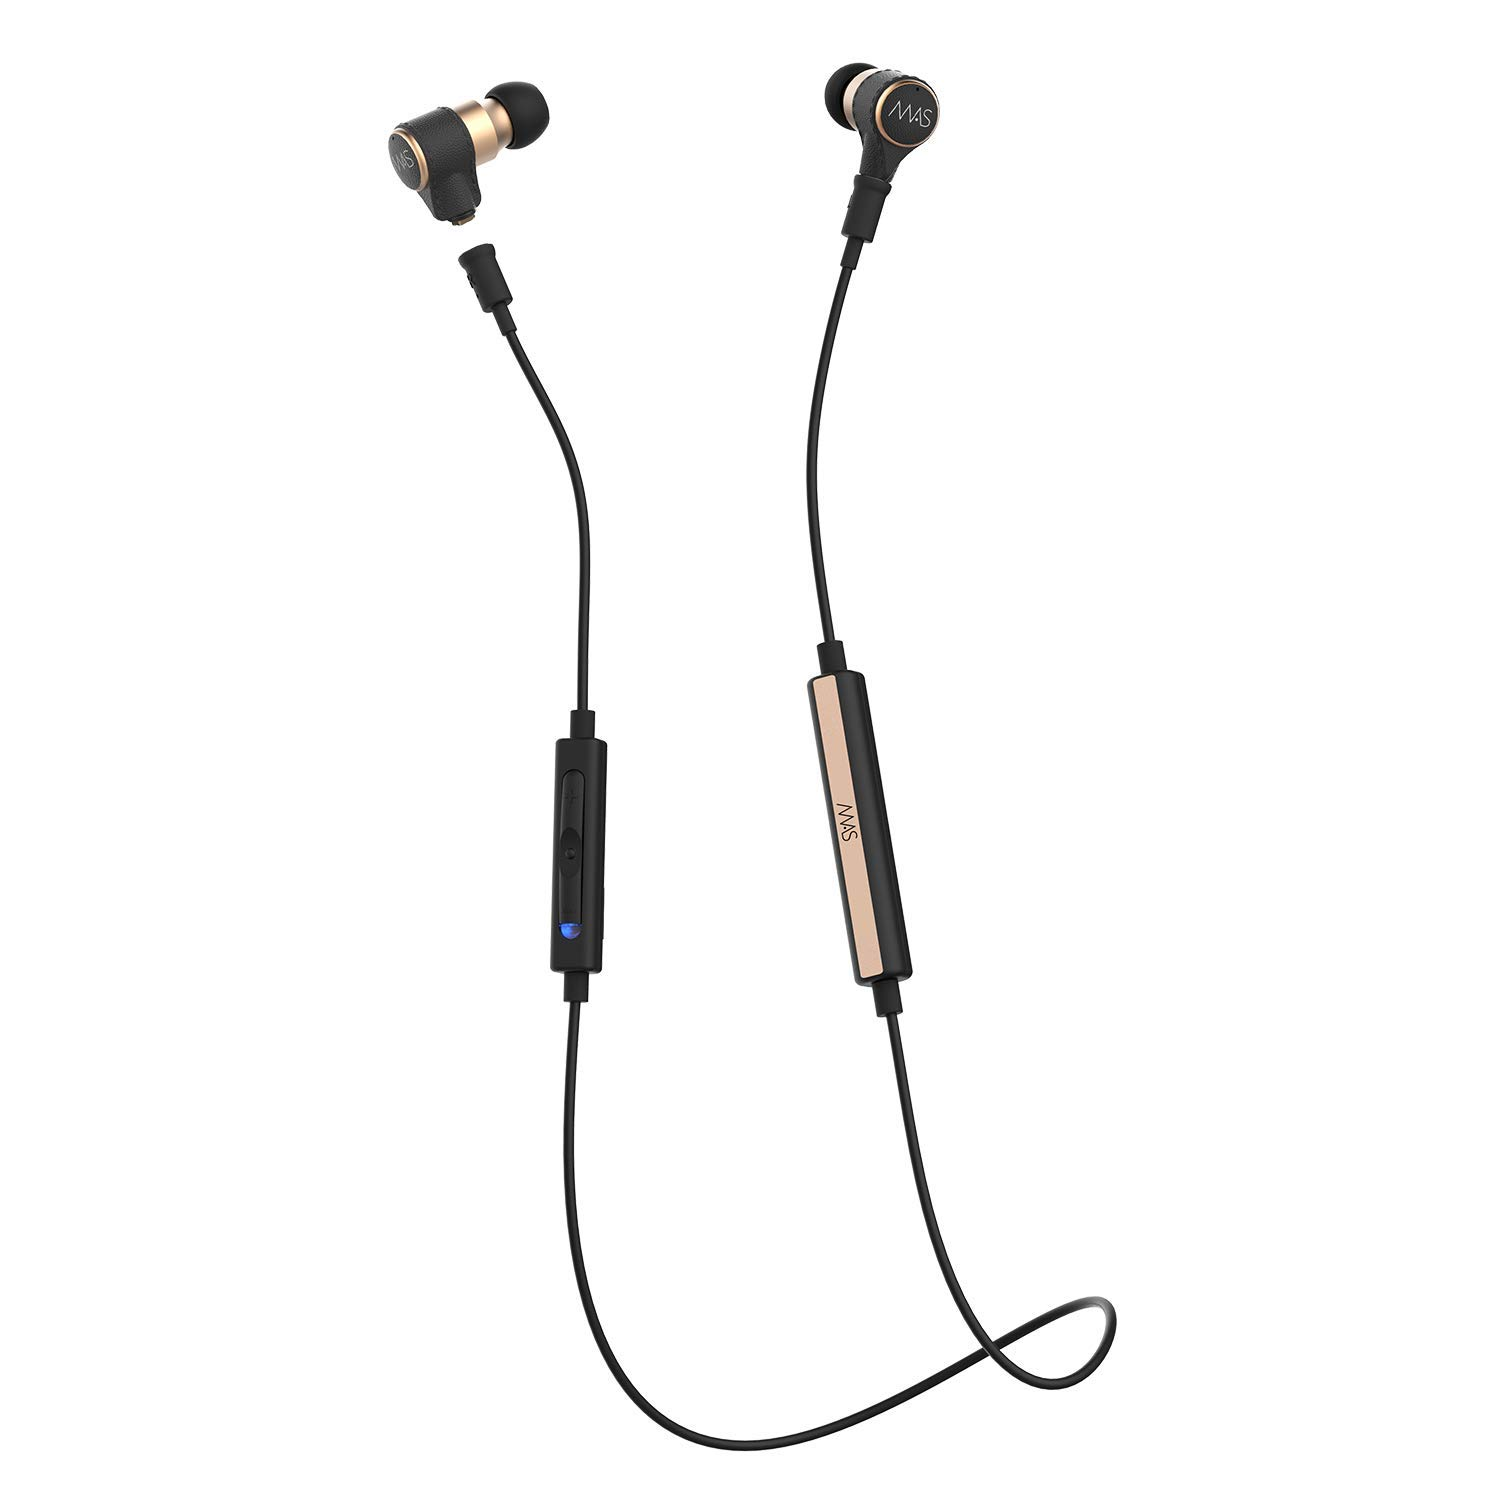 MAS X5i Five Driver HiFi in Ear Monitor Headphones Bluetooth Combo with 12 Hours Continuous Listening Time MMCX Bluetooth Cable, Silver Plated Audio Cable, Inline Remote Cable with MEMS Microphone